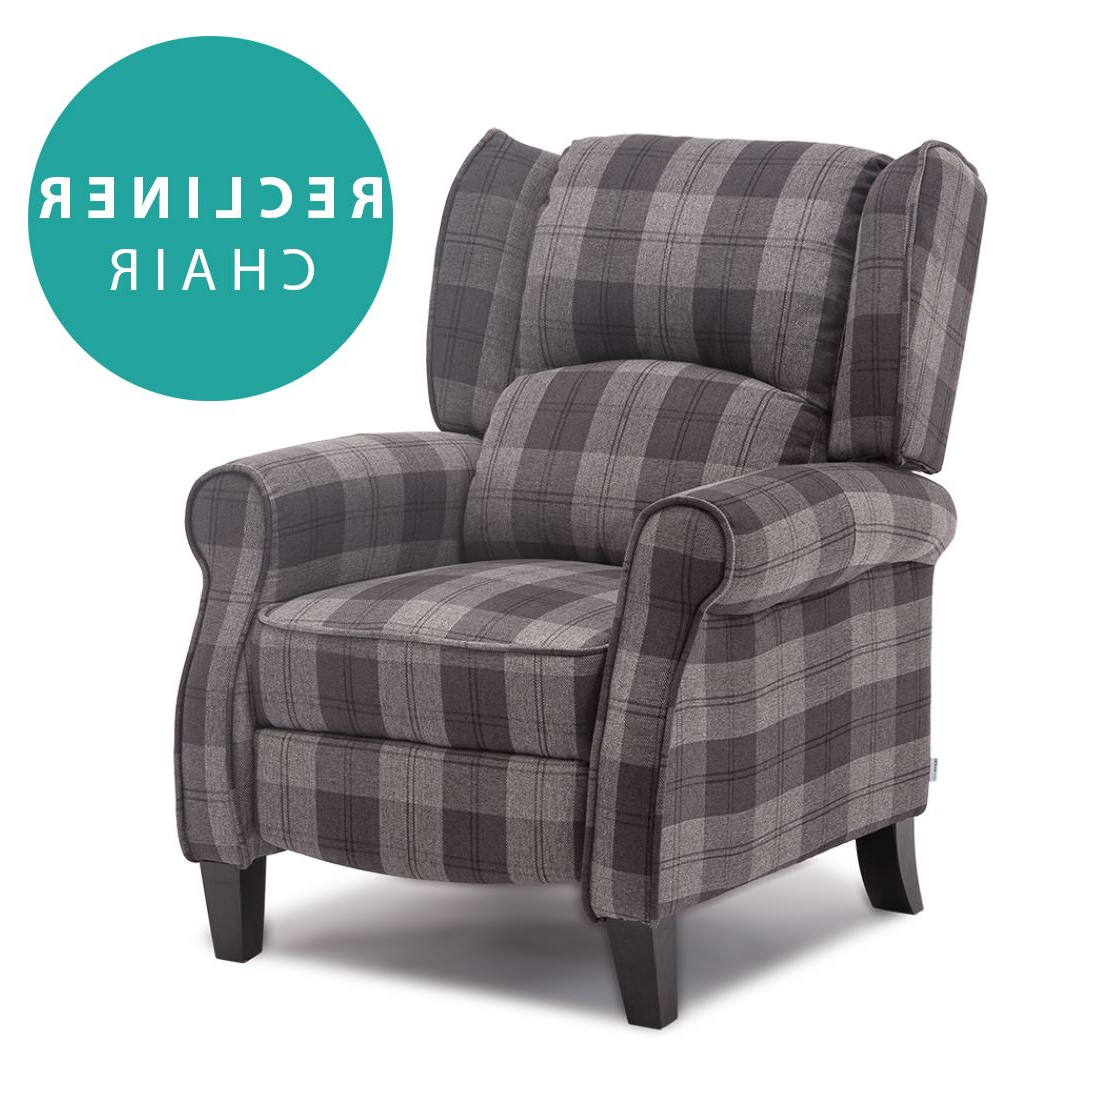 Best And Newest Eaton Wing Back Fireside Check Fabric Recliner Armchair Sofa Chair Intended For Sofa Chair Recliner (View 3 of 20)